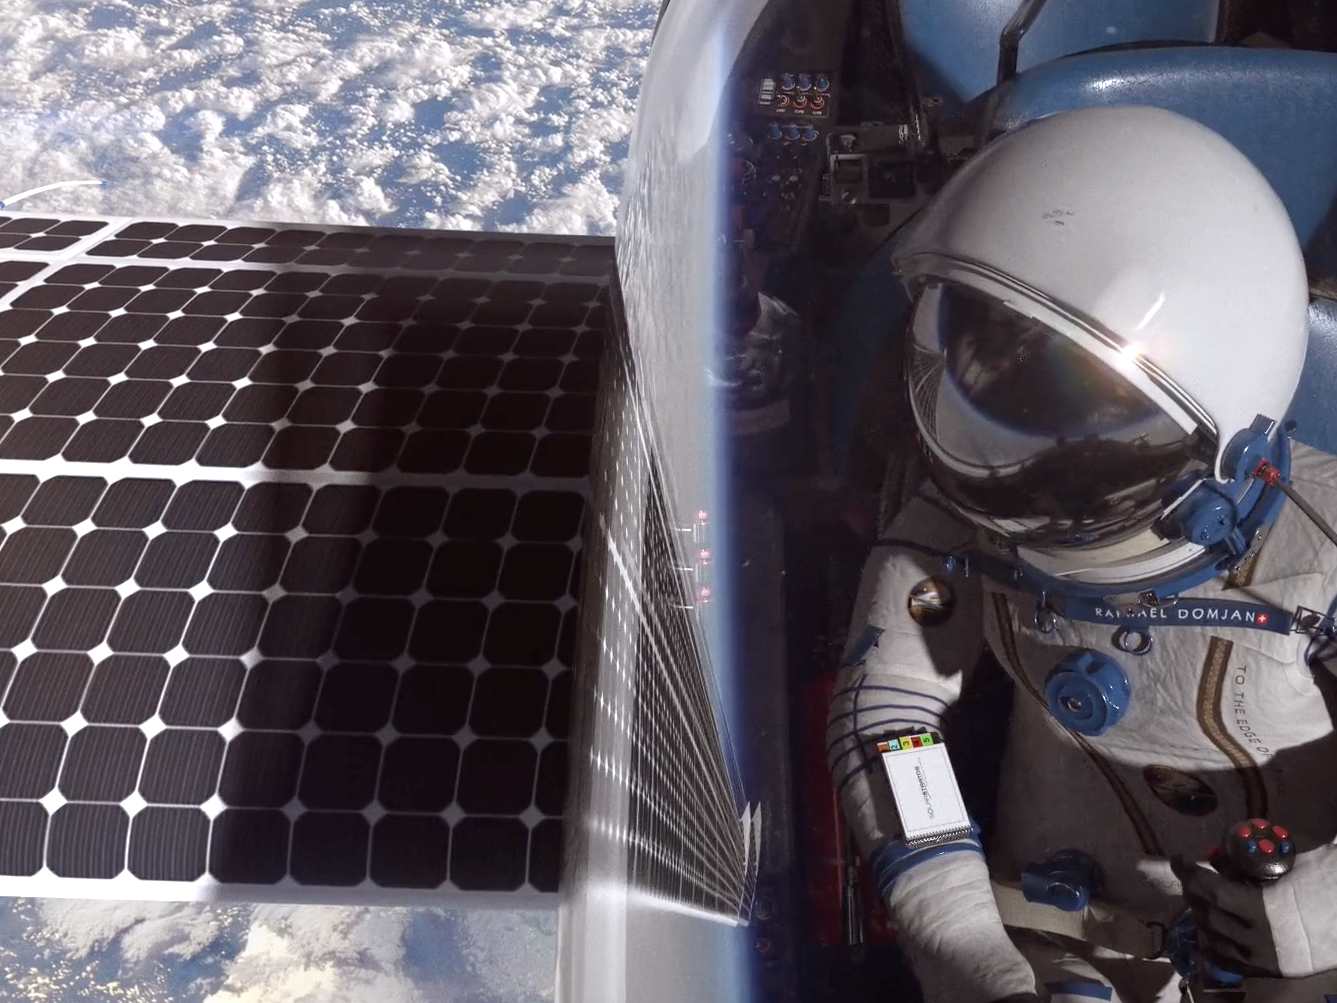 SolarStratos Will Use Solar for Space Tourism